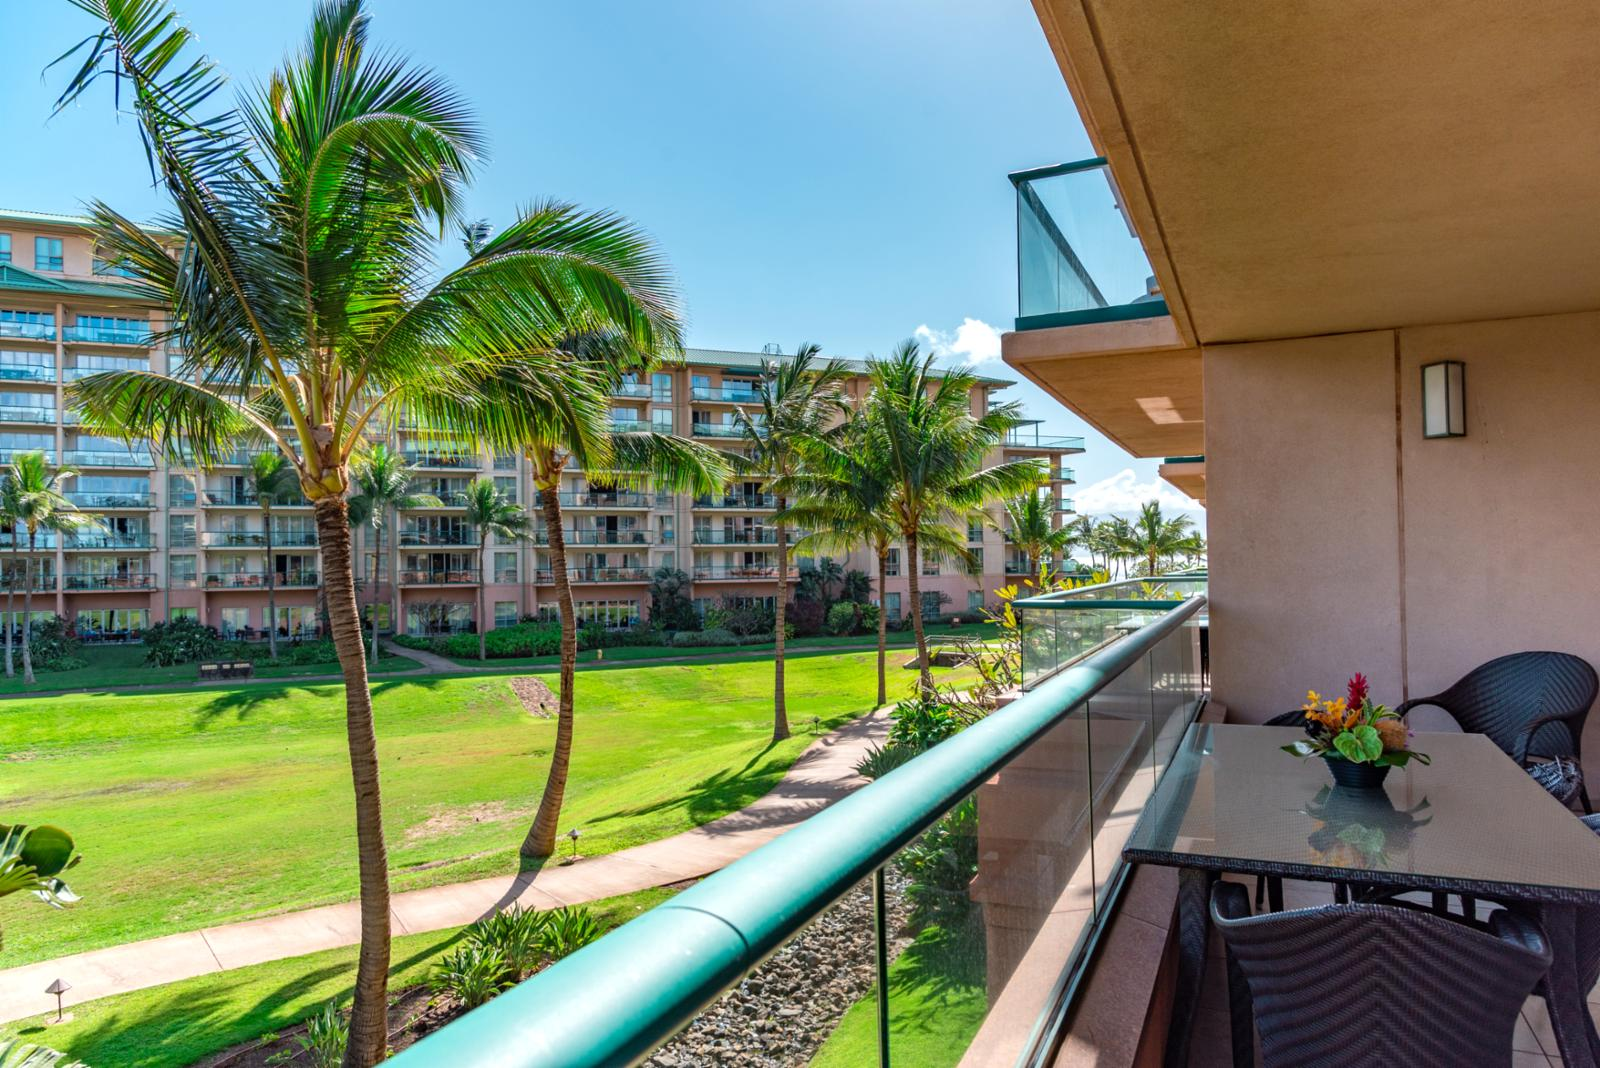 Welcome to Honua Kai Resort - Konea Tower Villa 210!